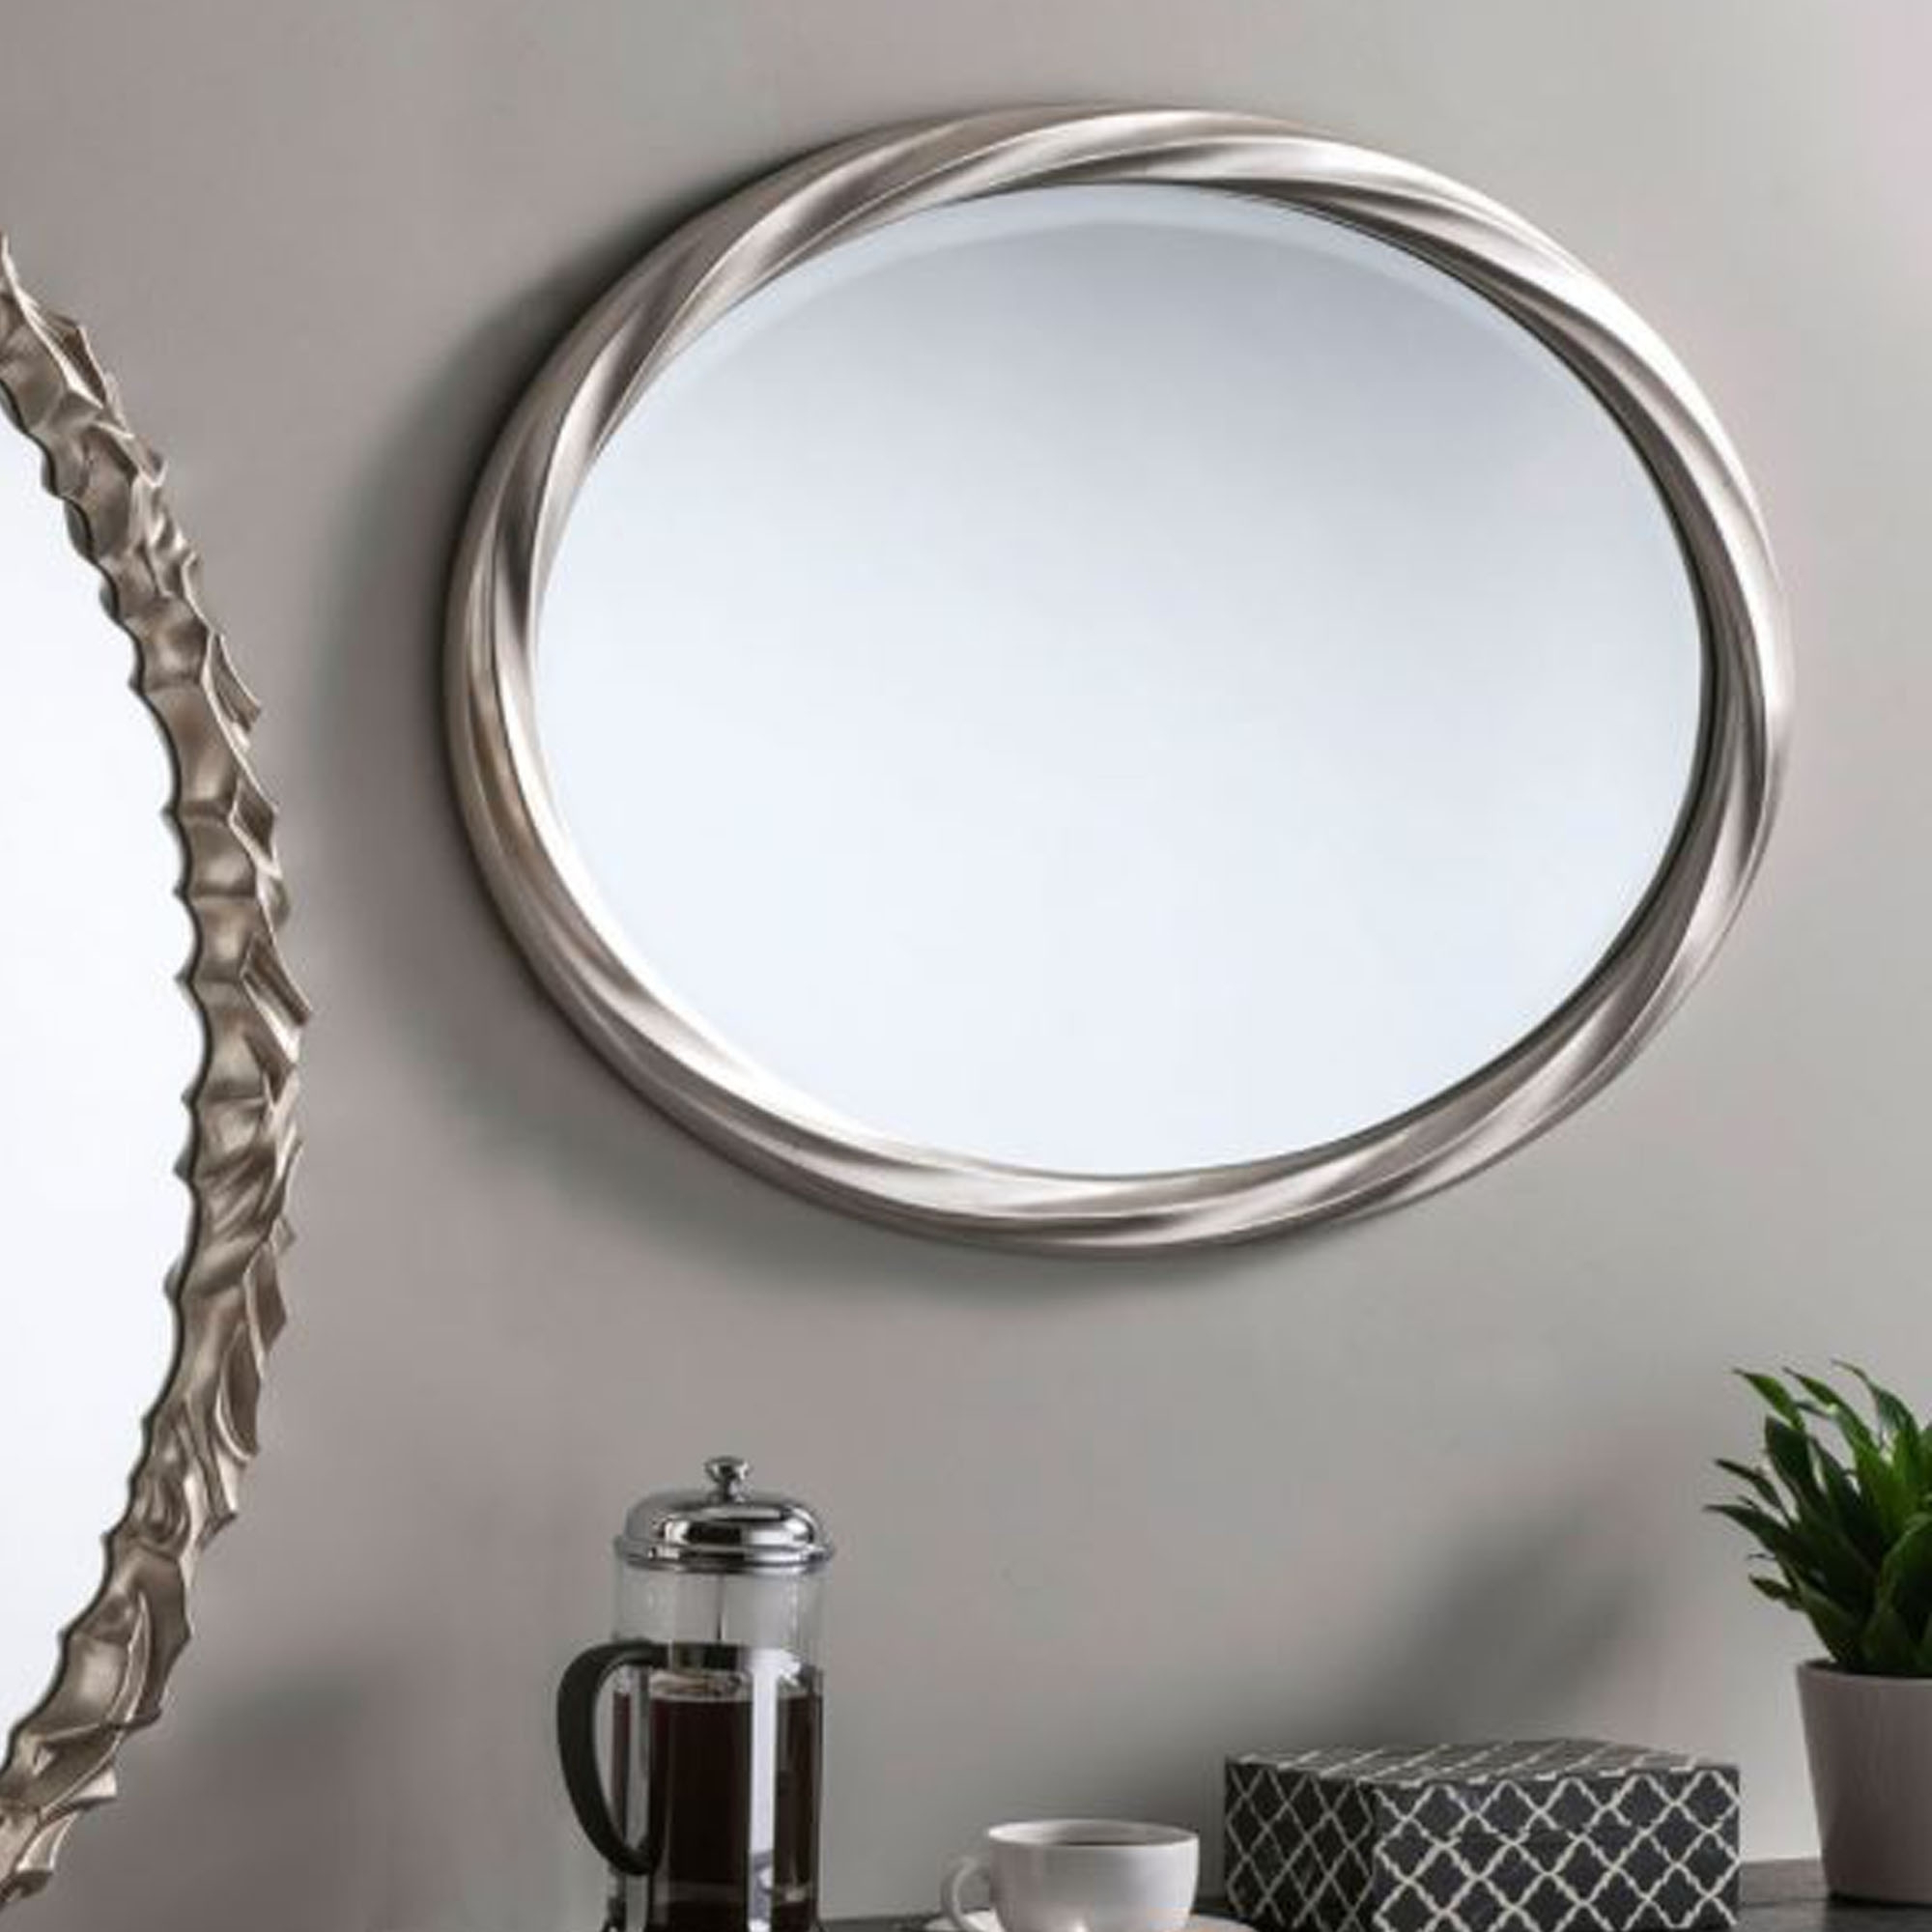 Swirl Wall Mirrors With Regard To Fashionable Swirl Silver Oval Wall Mirror (Gallery 5 of 20)